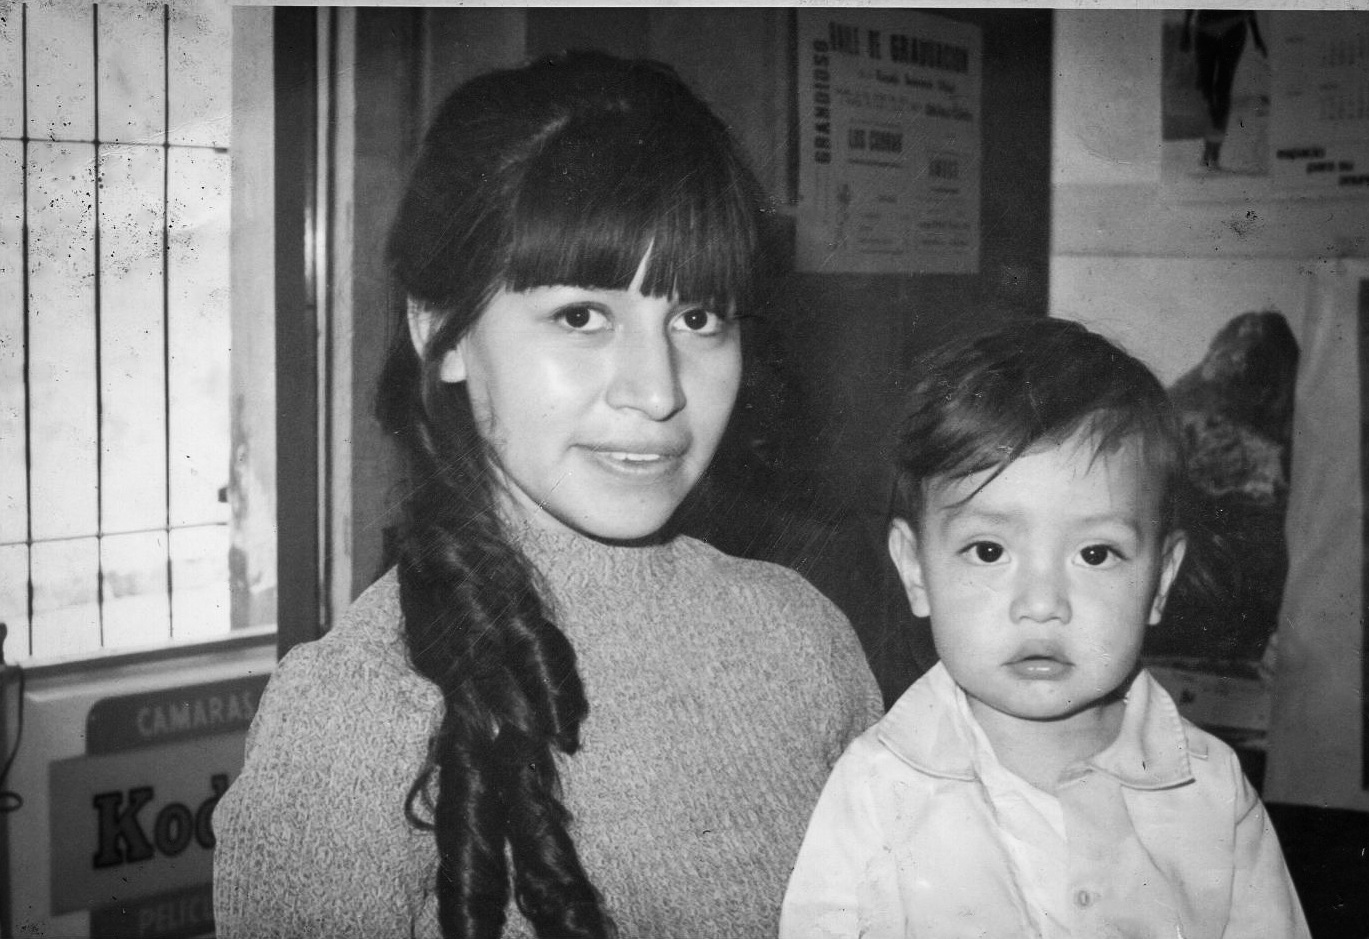 Enrique Diaz, with his mother Dolores. Dolores brought her 2-year-old son to America in 1972.